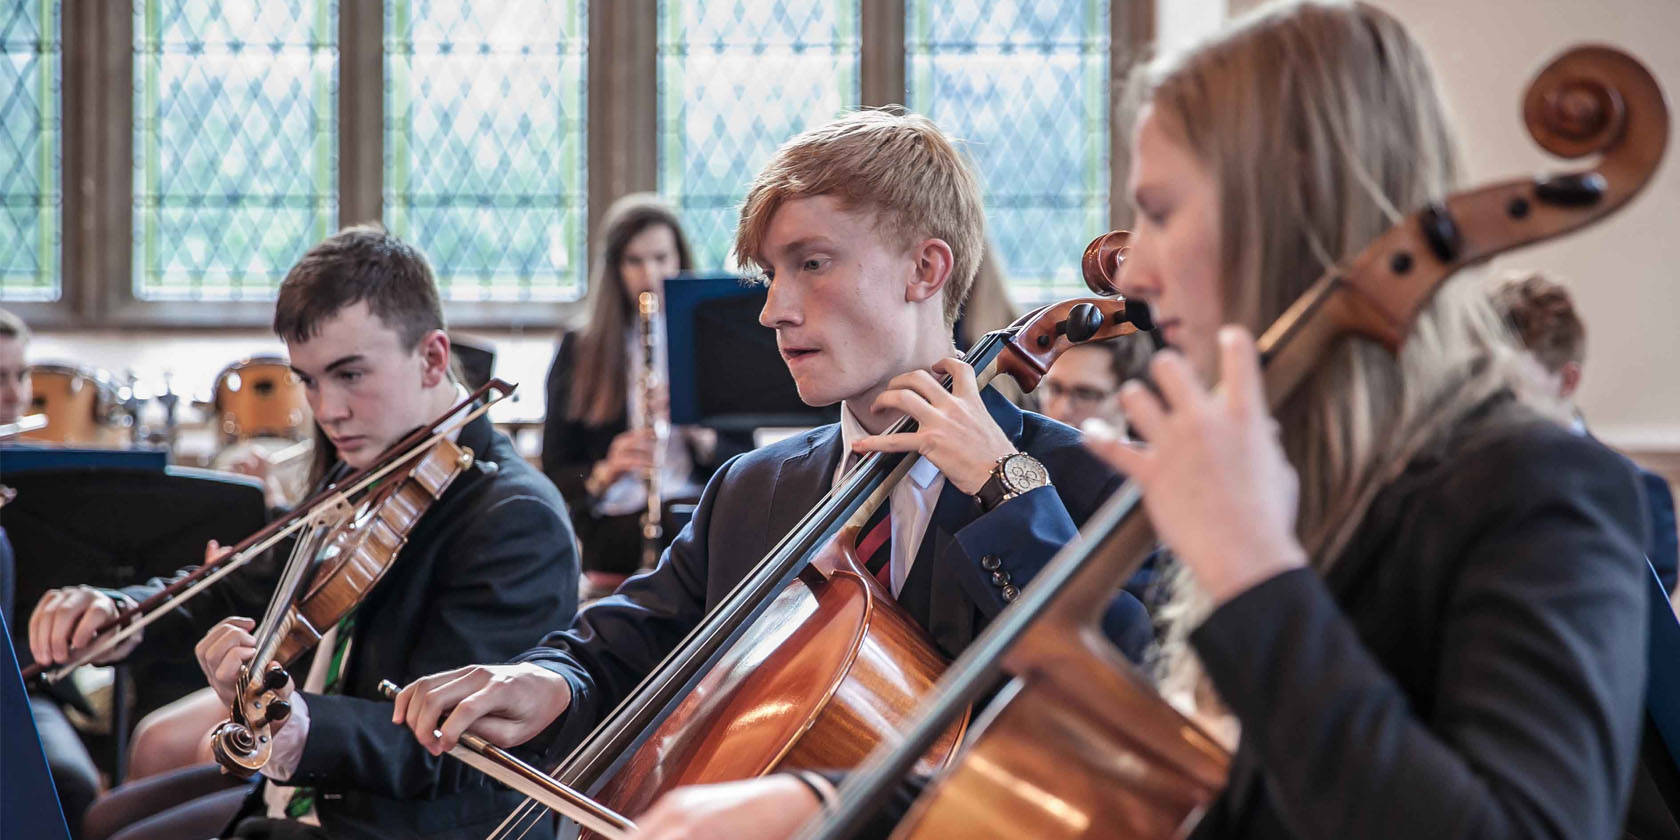 Malvern College music